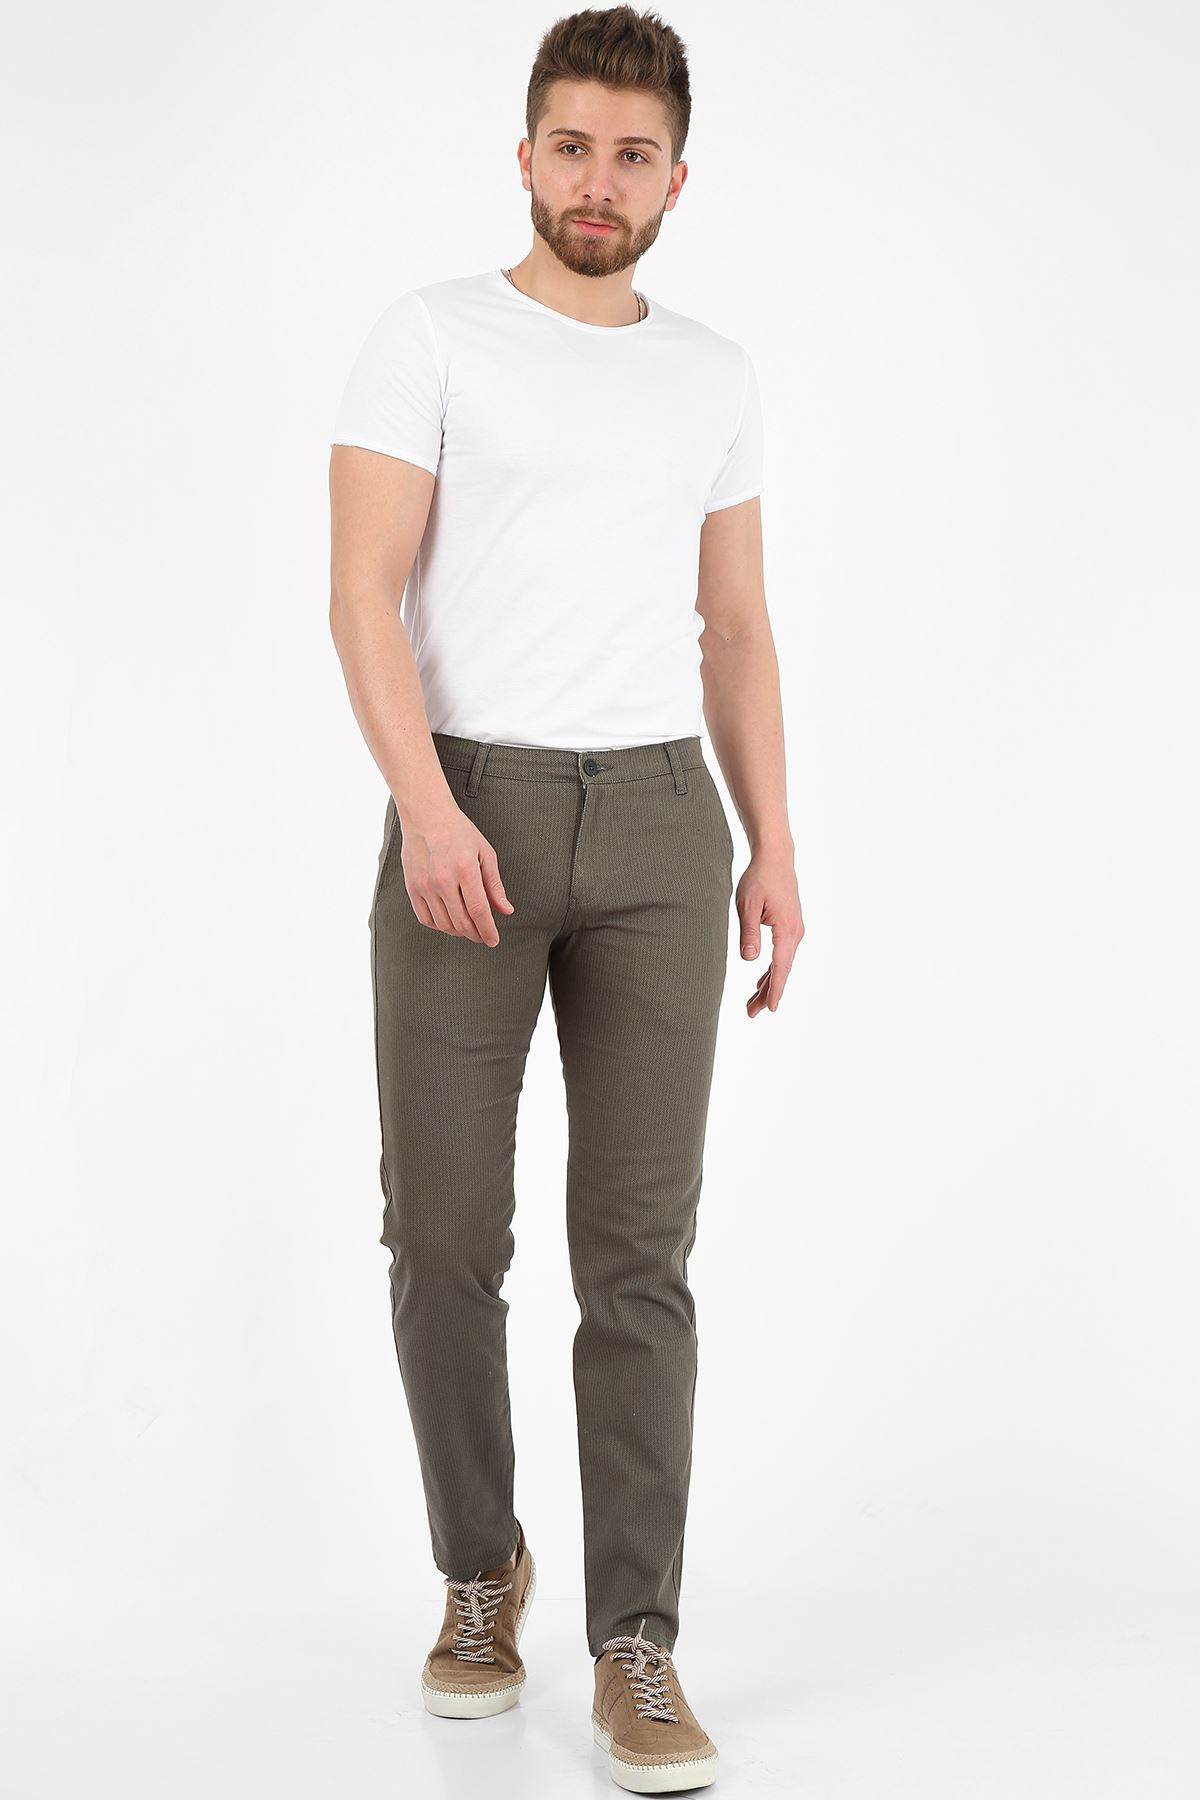 Haki Slim Fit Erkek Chino Pantolon -OLİVER